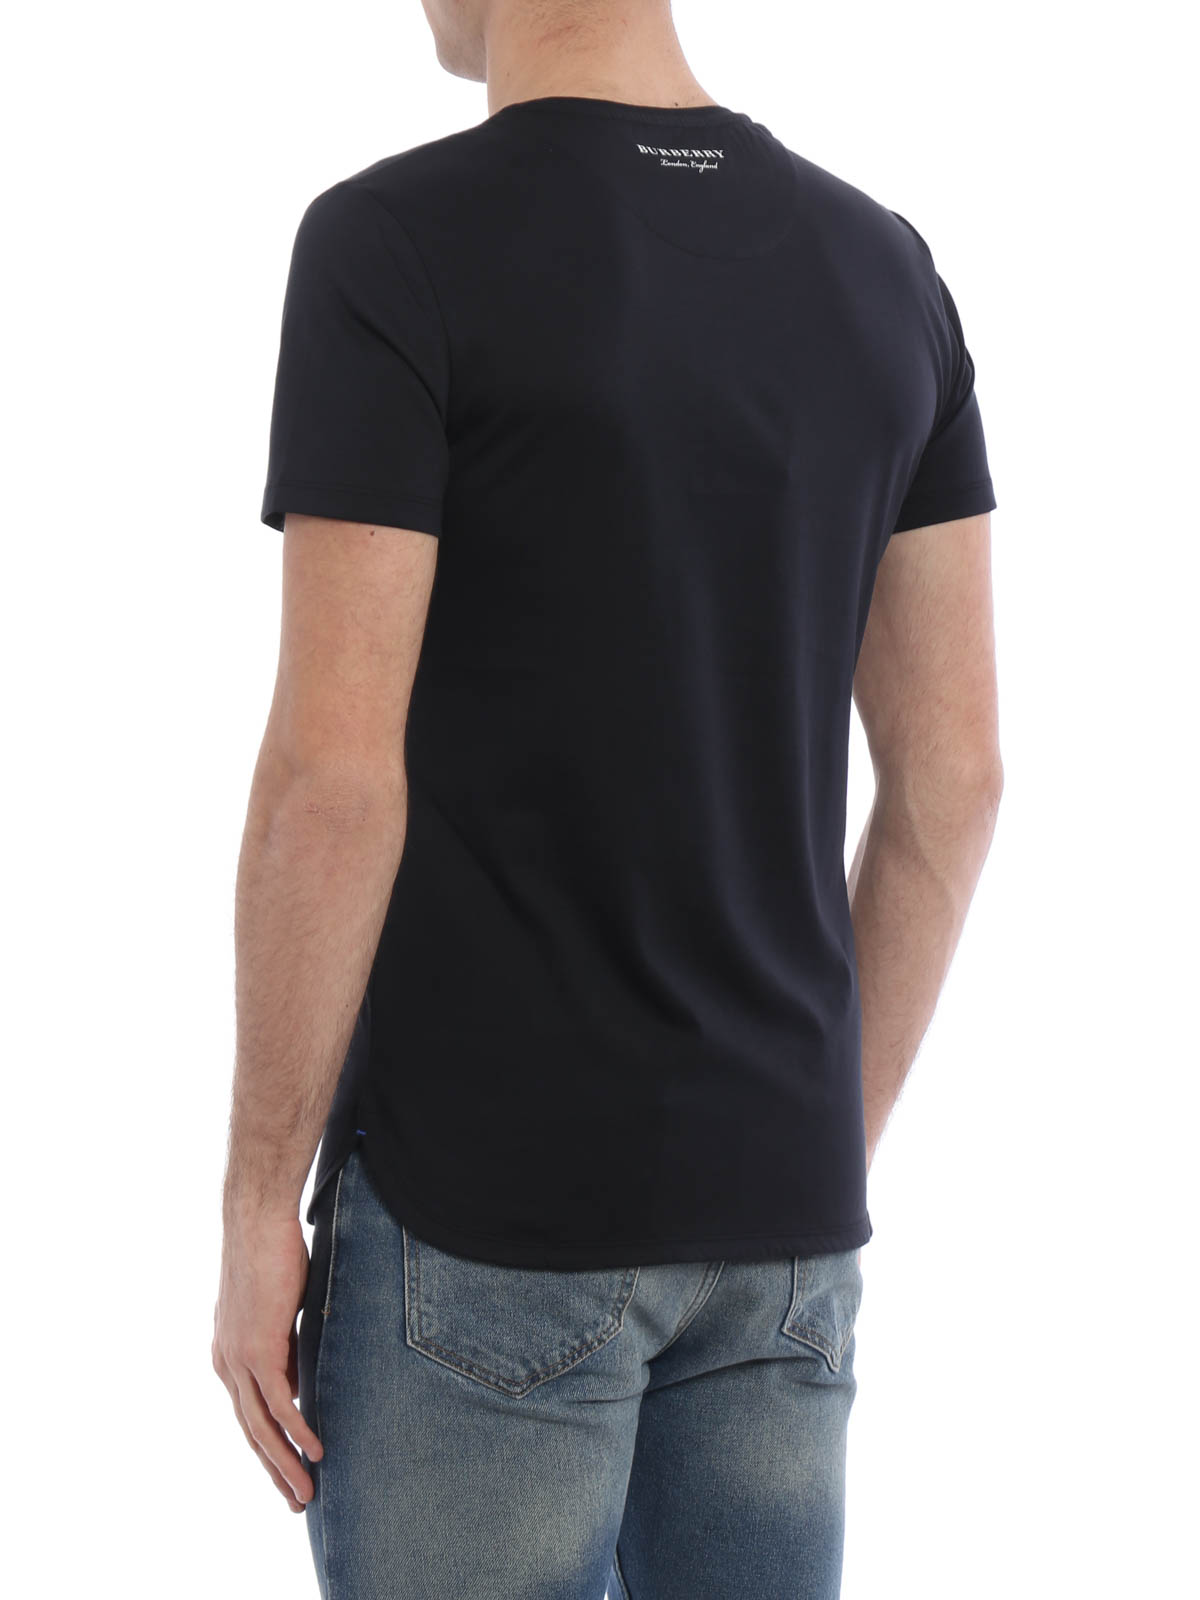 stantford cotton jersey t shirt by burberry t shirts